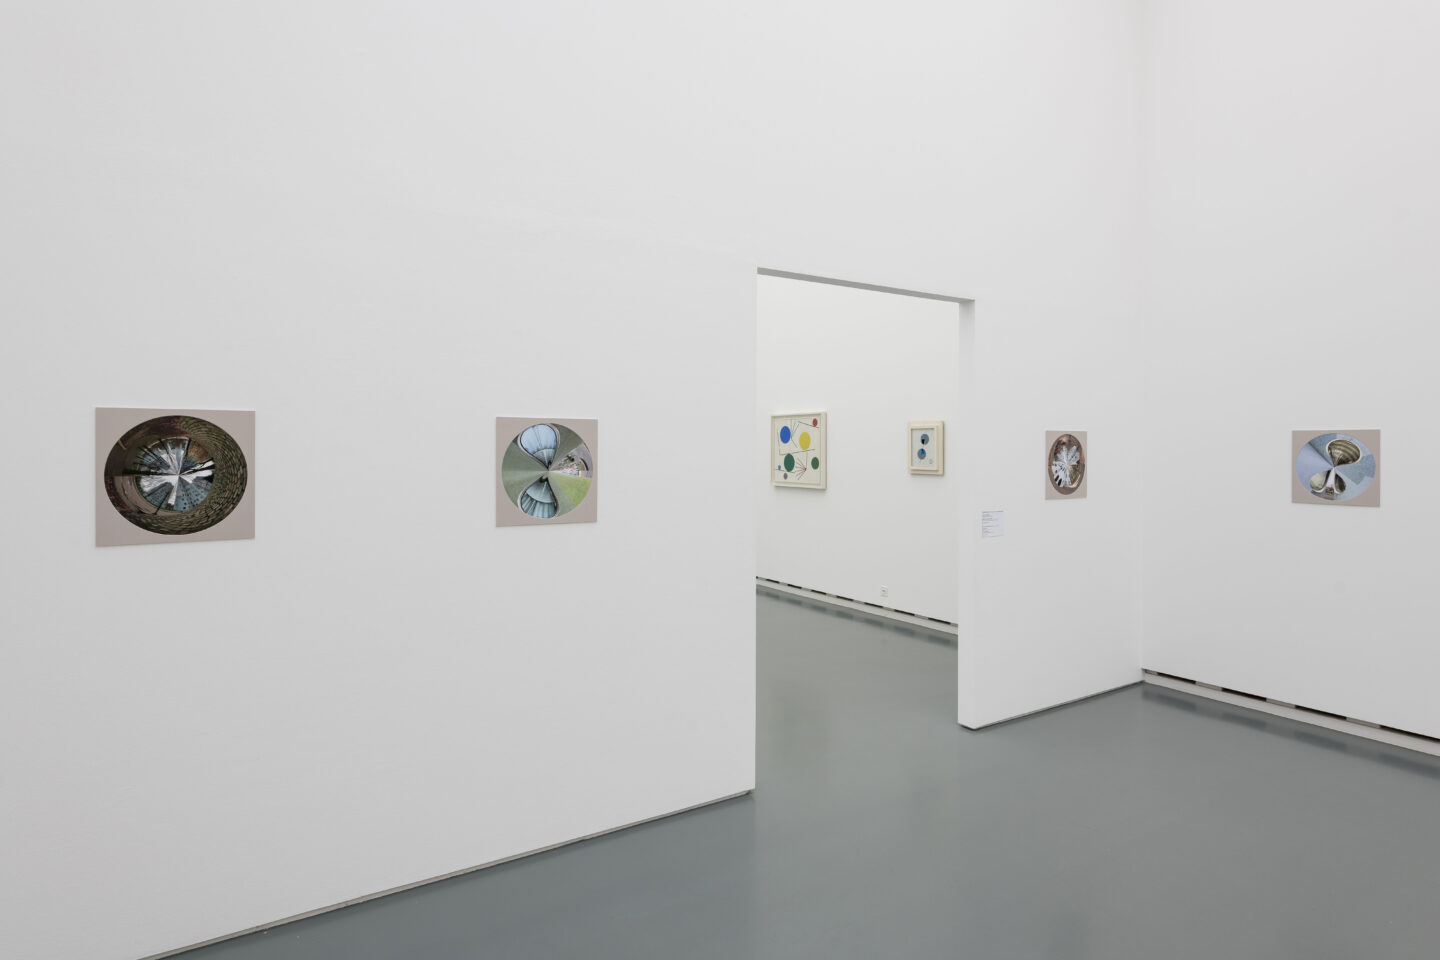 Exhibition View Dominic Michel Soloshow (view on Allée de l'Arlequin, 2020) at Aargauer Kunsthaus, Aarau, 2020 / Photo: Ullmann Photography / Courtesy: the artist and Aargauer Kunsthaus